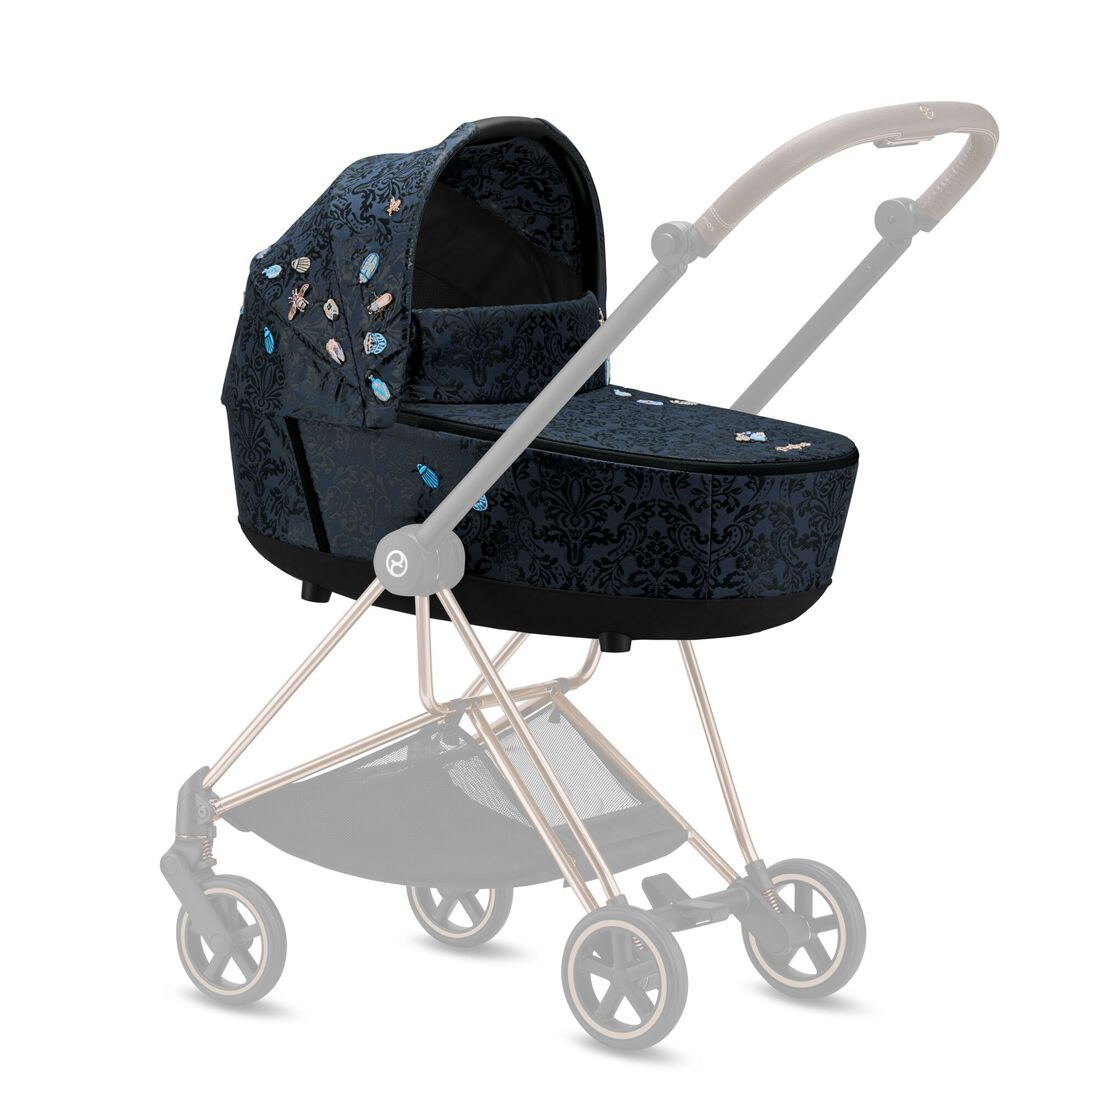 CYBEX Mios Lux Carry Cot - Jewels of Nature in Jewels of Nature large image number 4